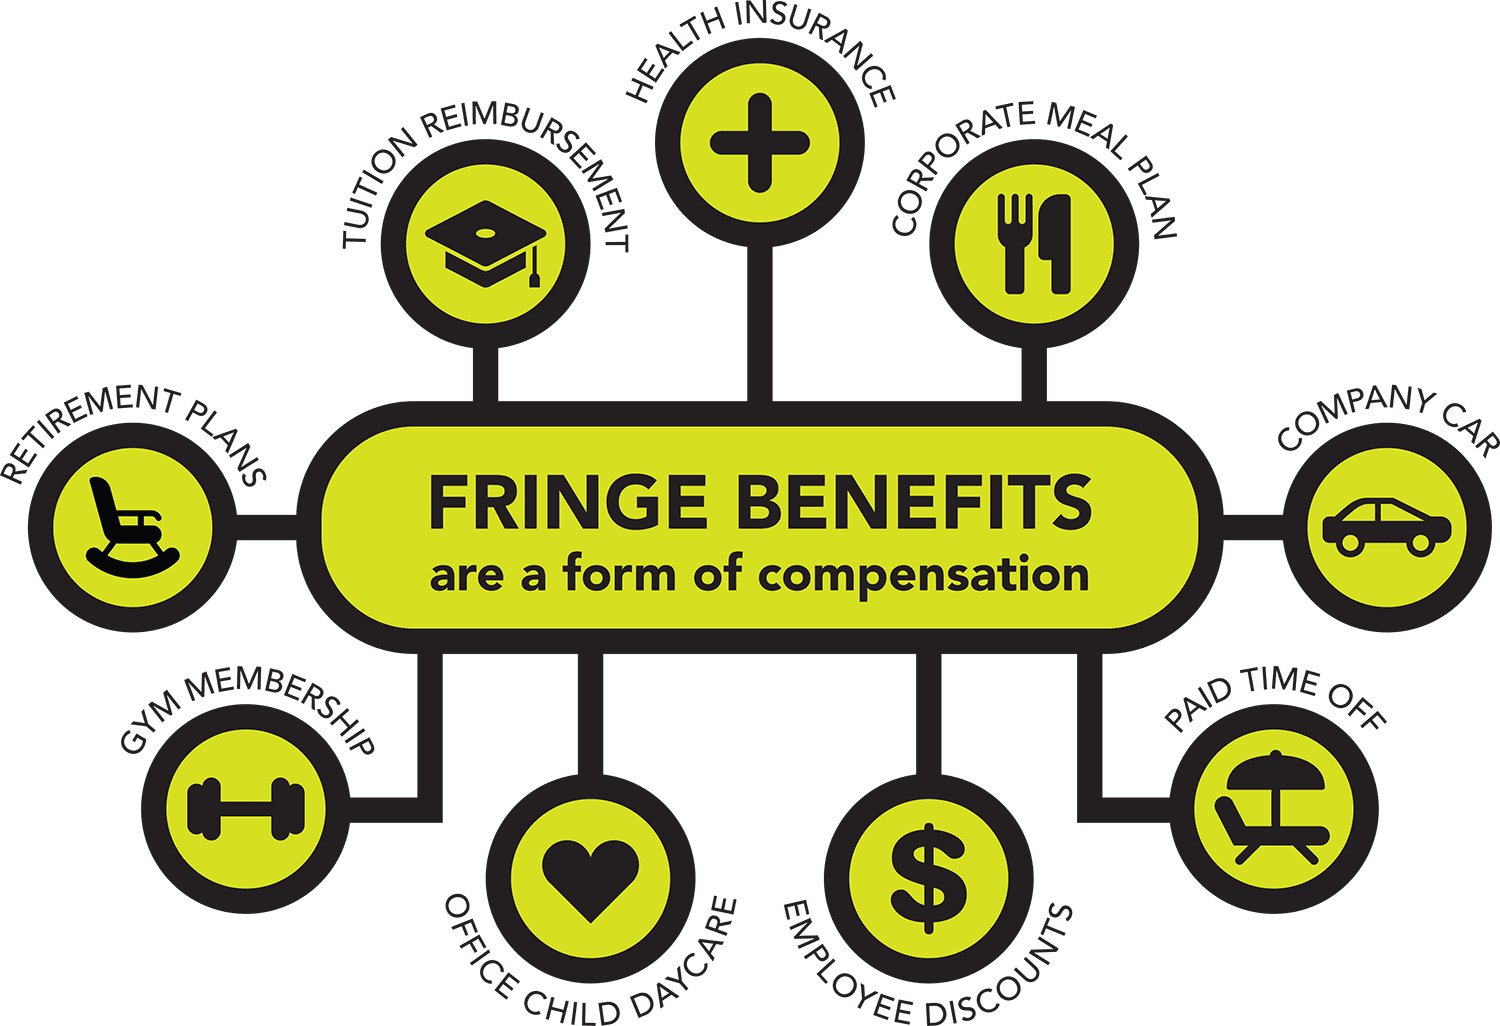 Fringe benefits can be very valuable, especially in the form of health insurance.